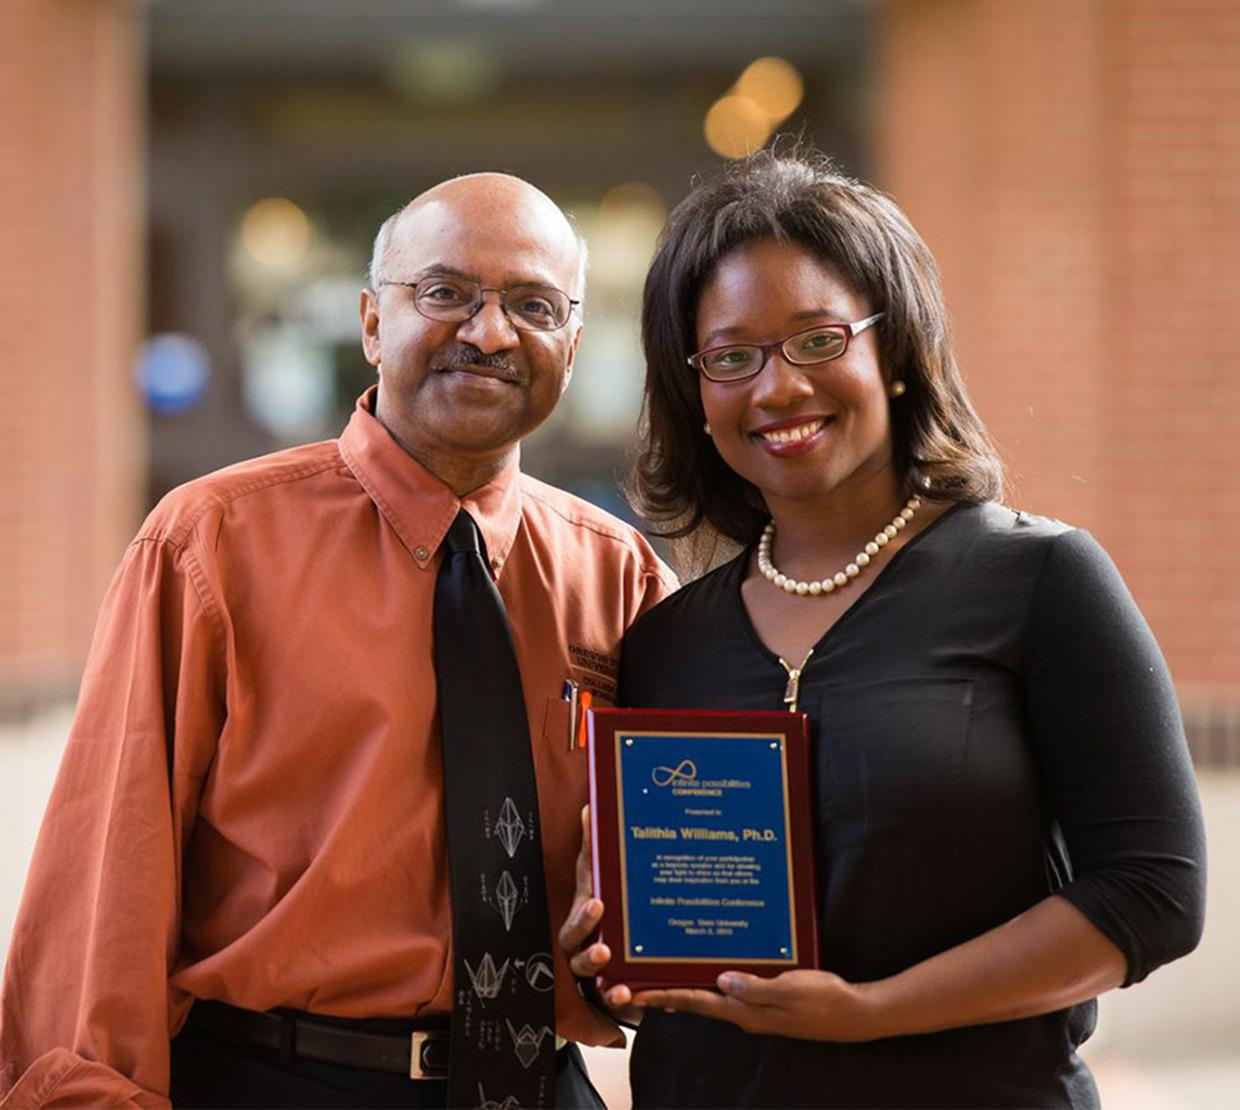 Talithia Williams receiving award from Sastry Pantula